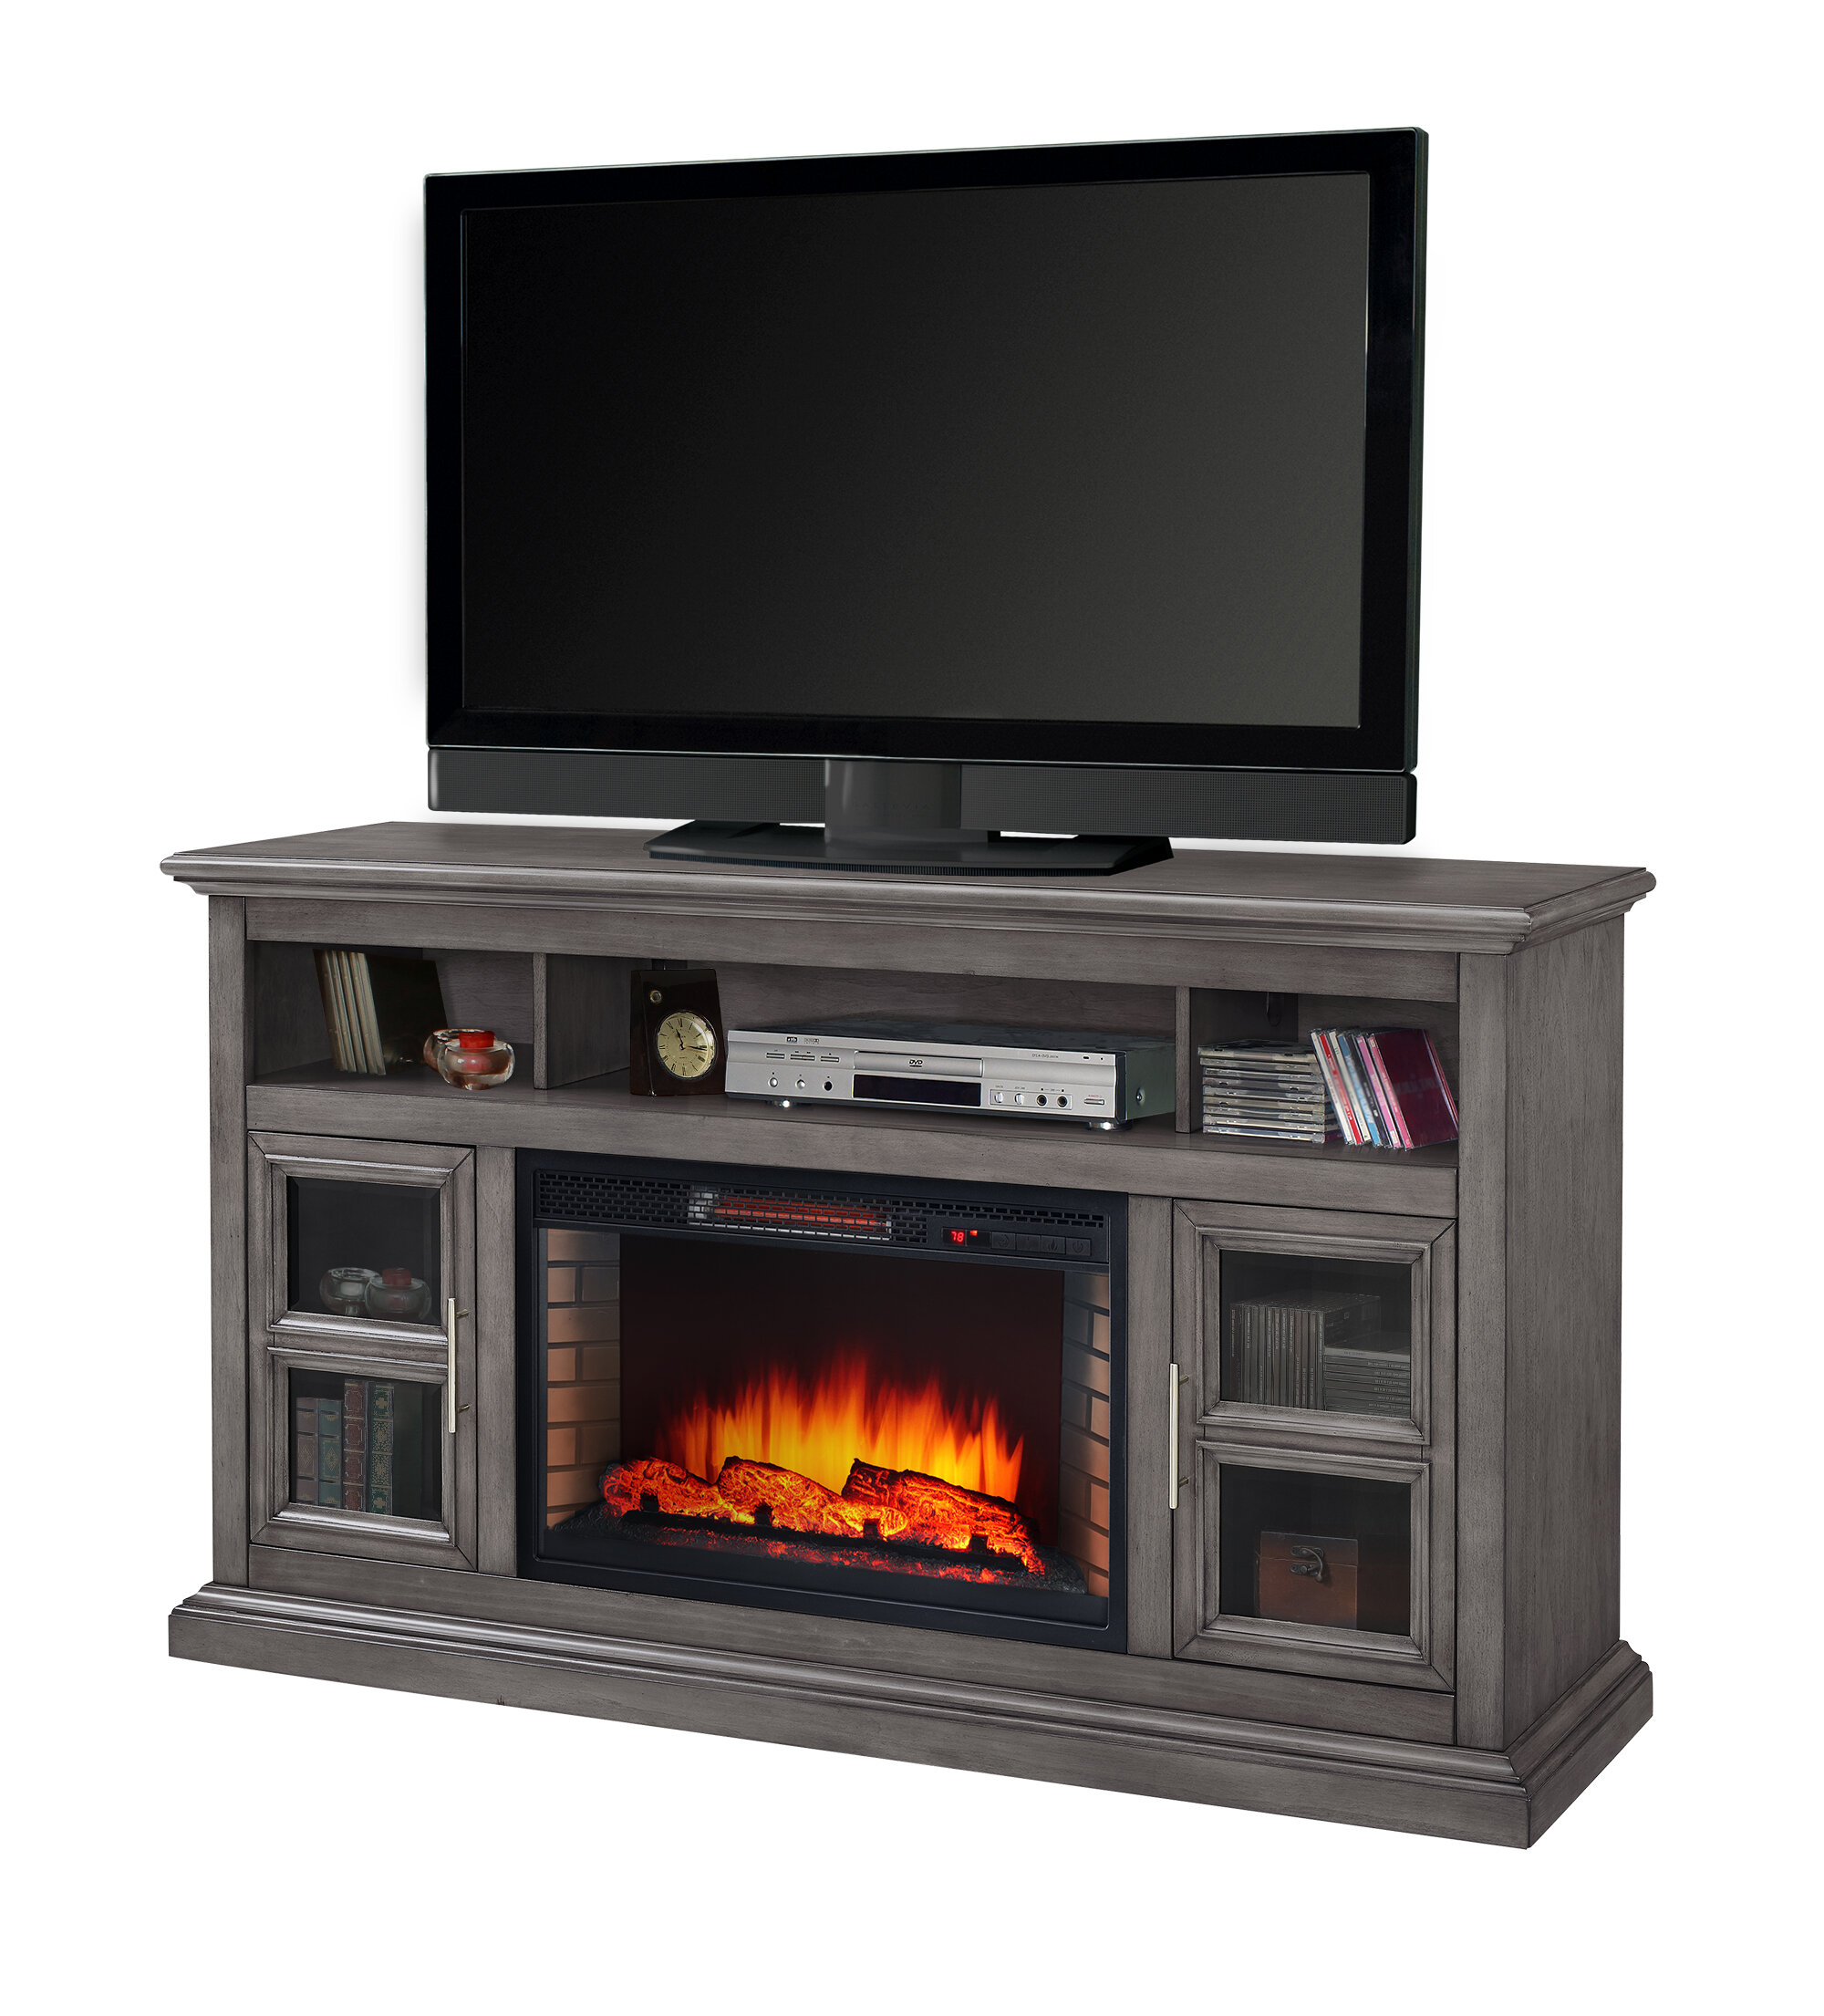 "Muskoka TV Stand for TVs up to 75"" with Fireplace Included"